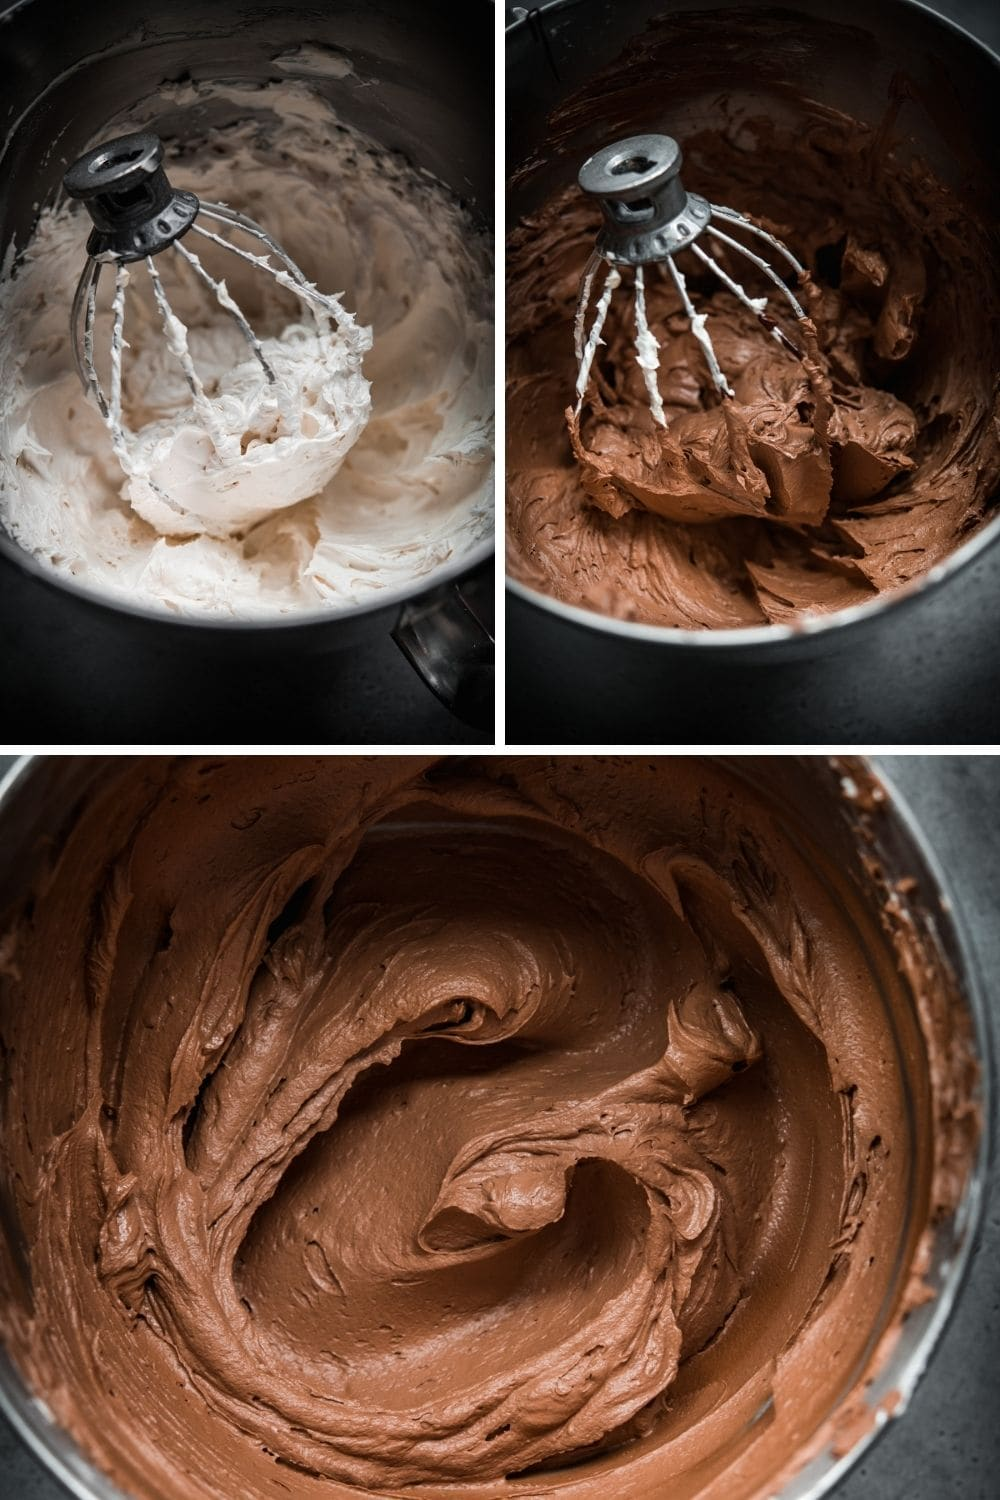 3 photos showing the process of making vegan chocolate buttercream in stand mixer bowl.